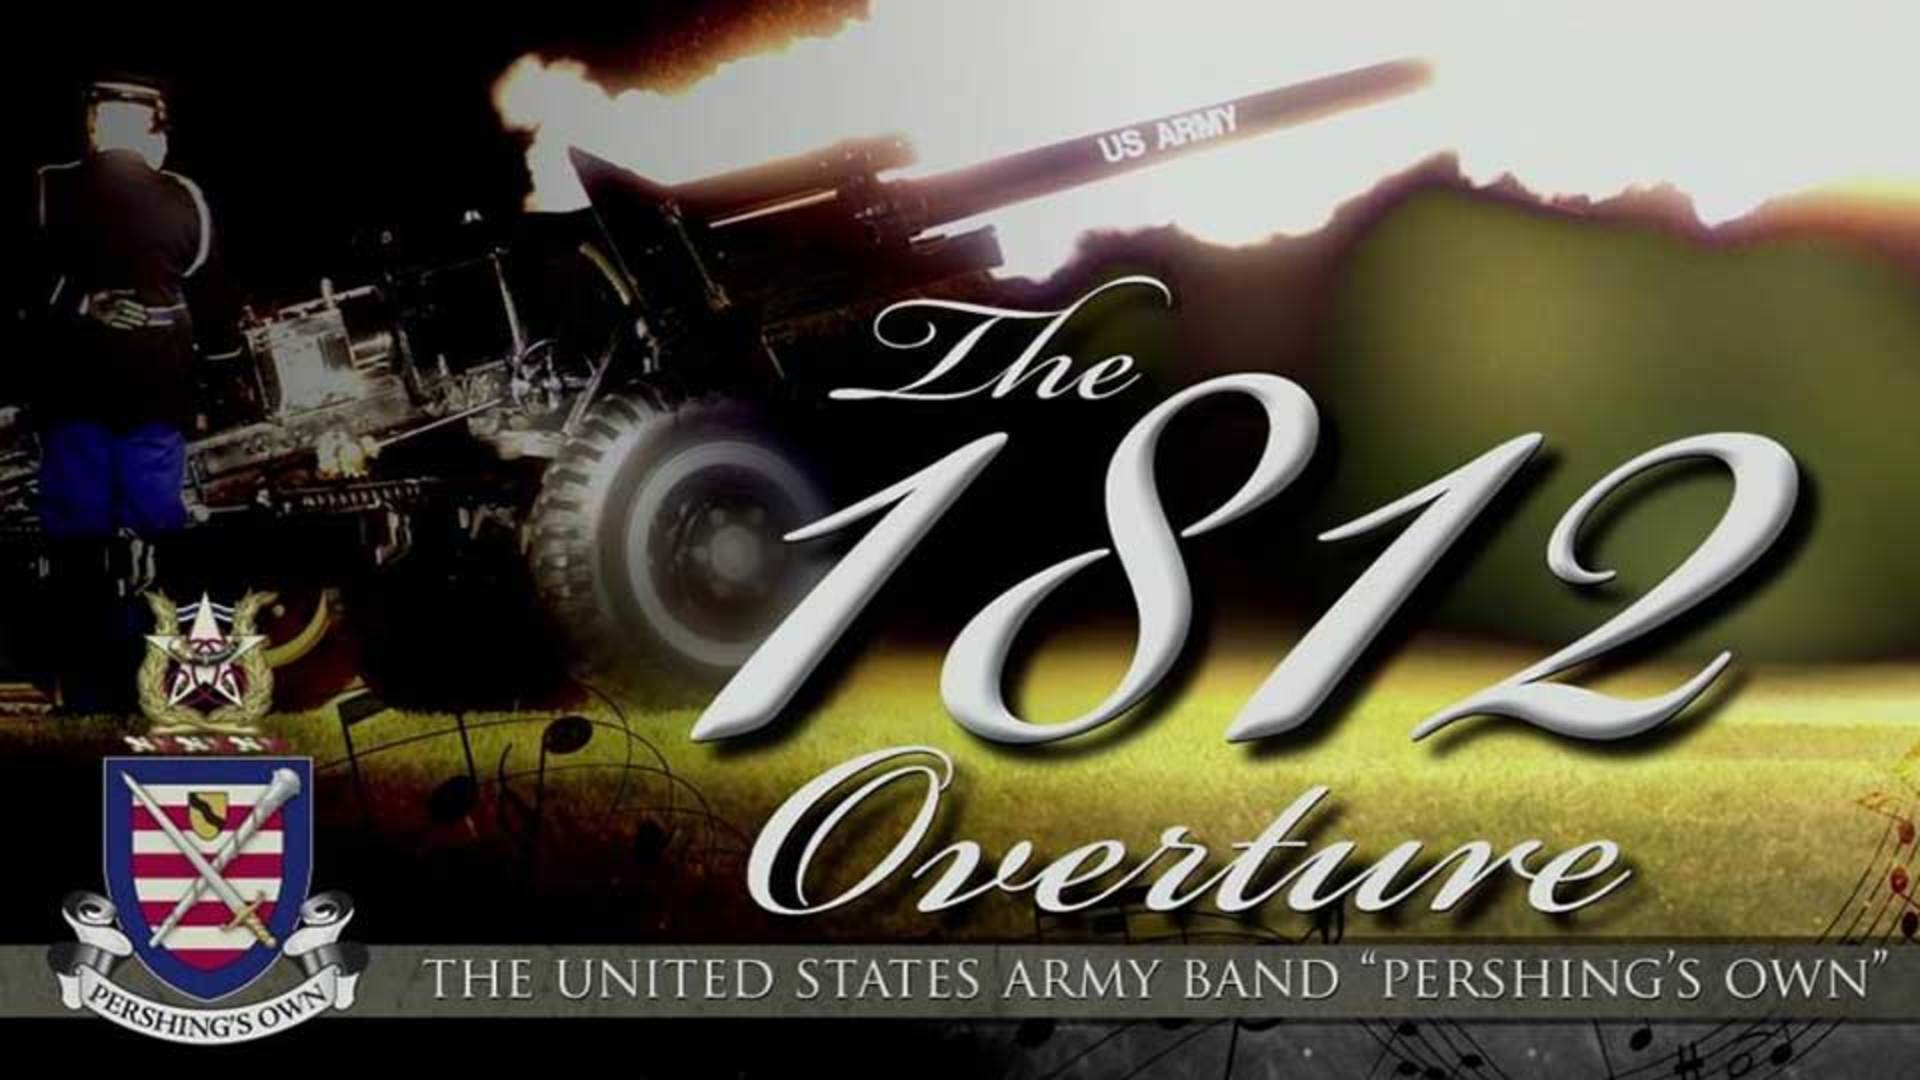 The US Army Band 1812 Overture Concert -